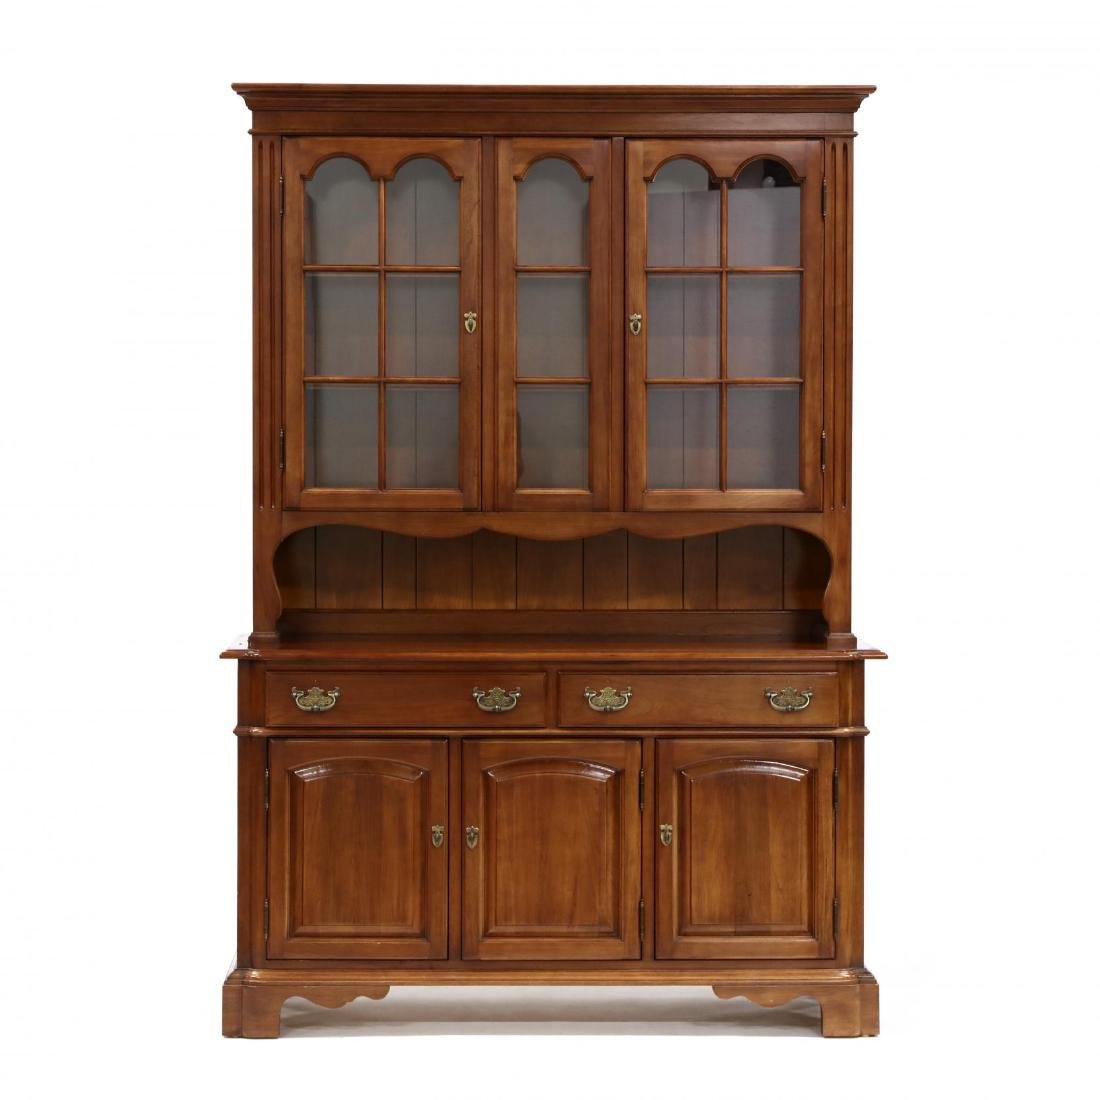 Monitor, Chippendale Style Cherry China Cabinet